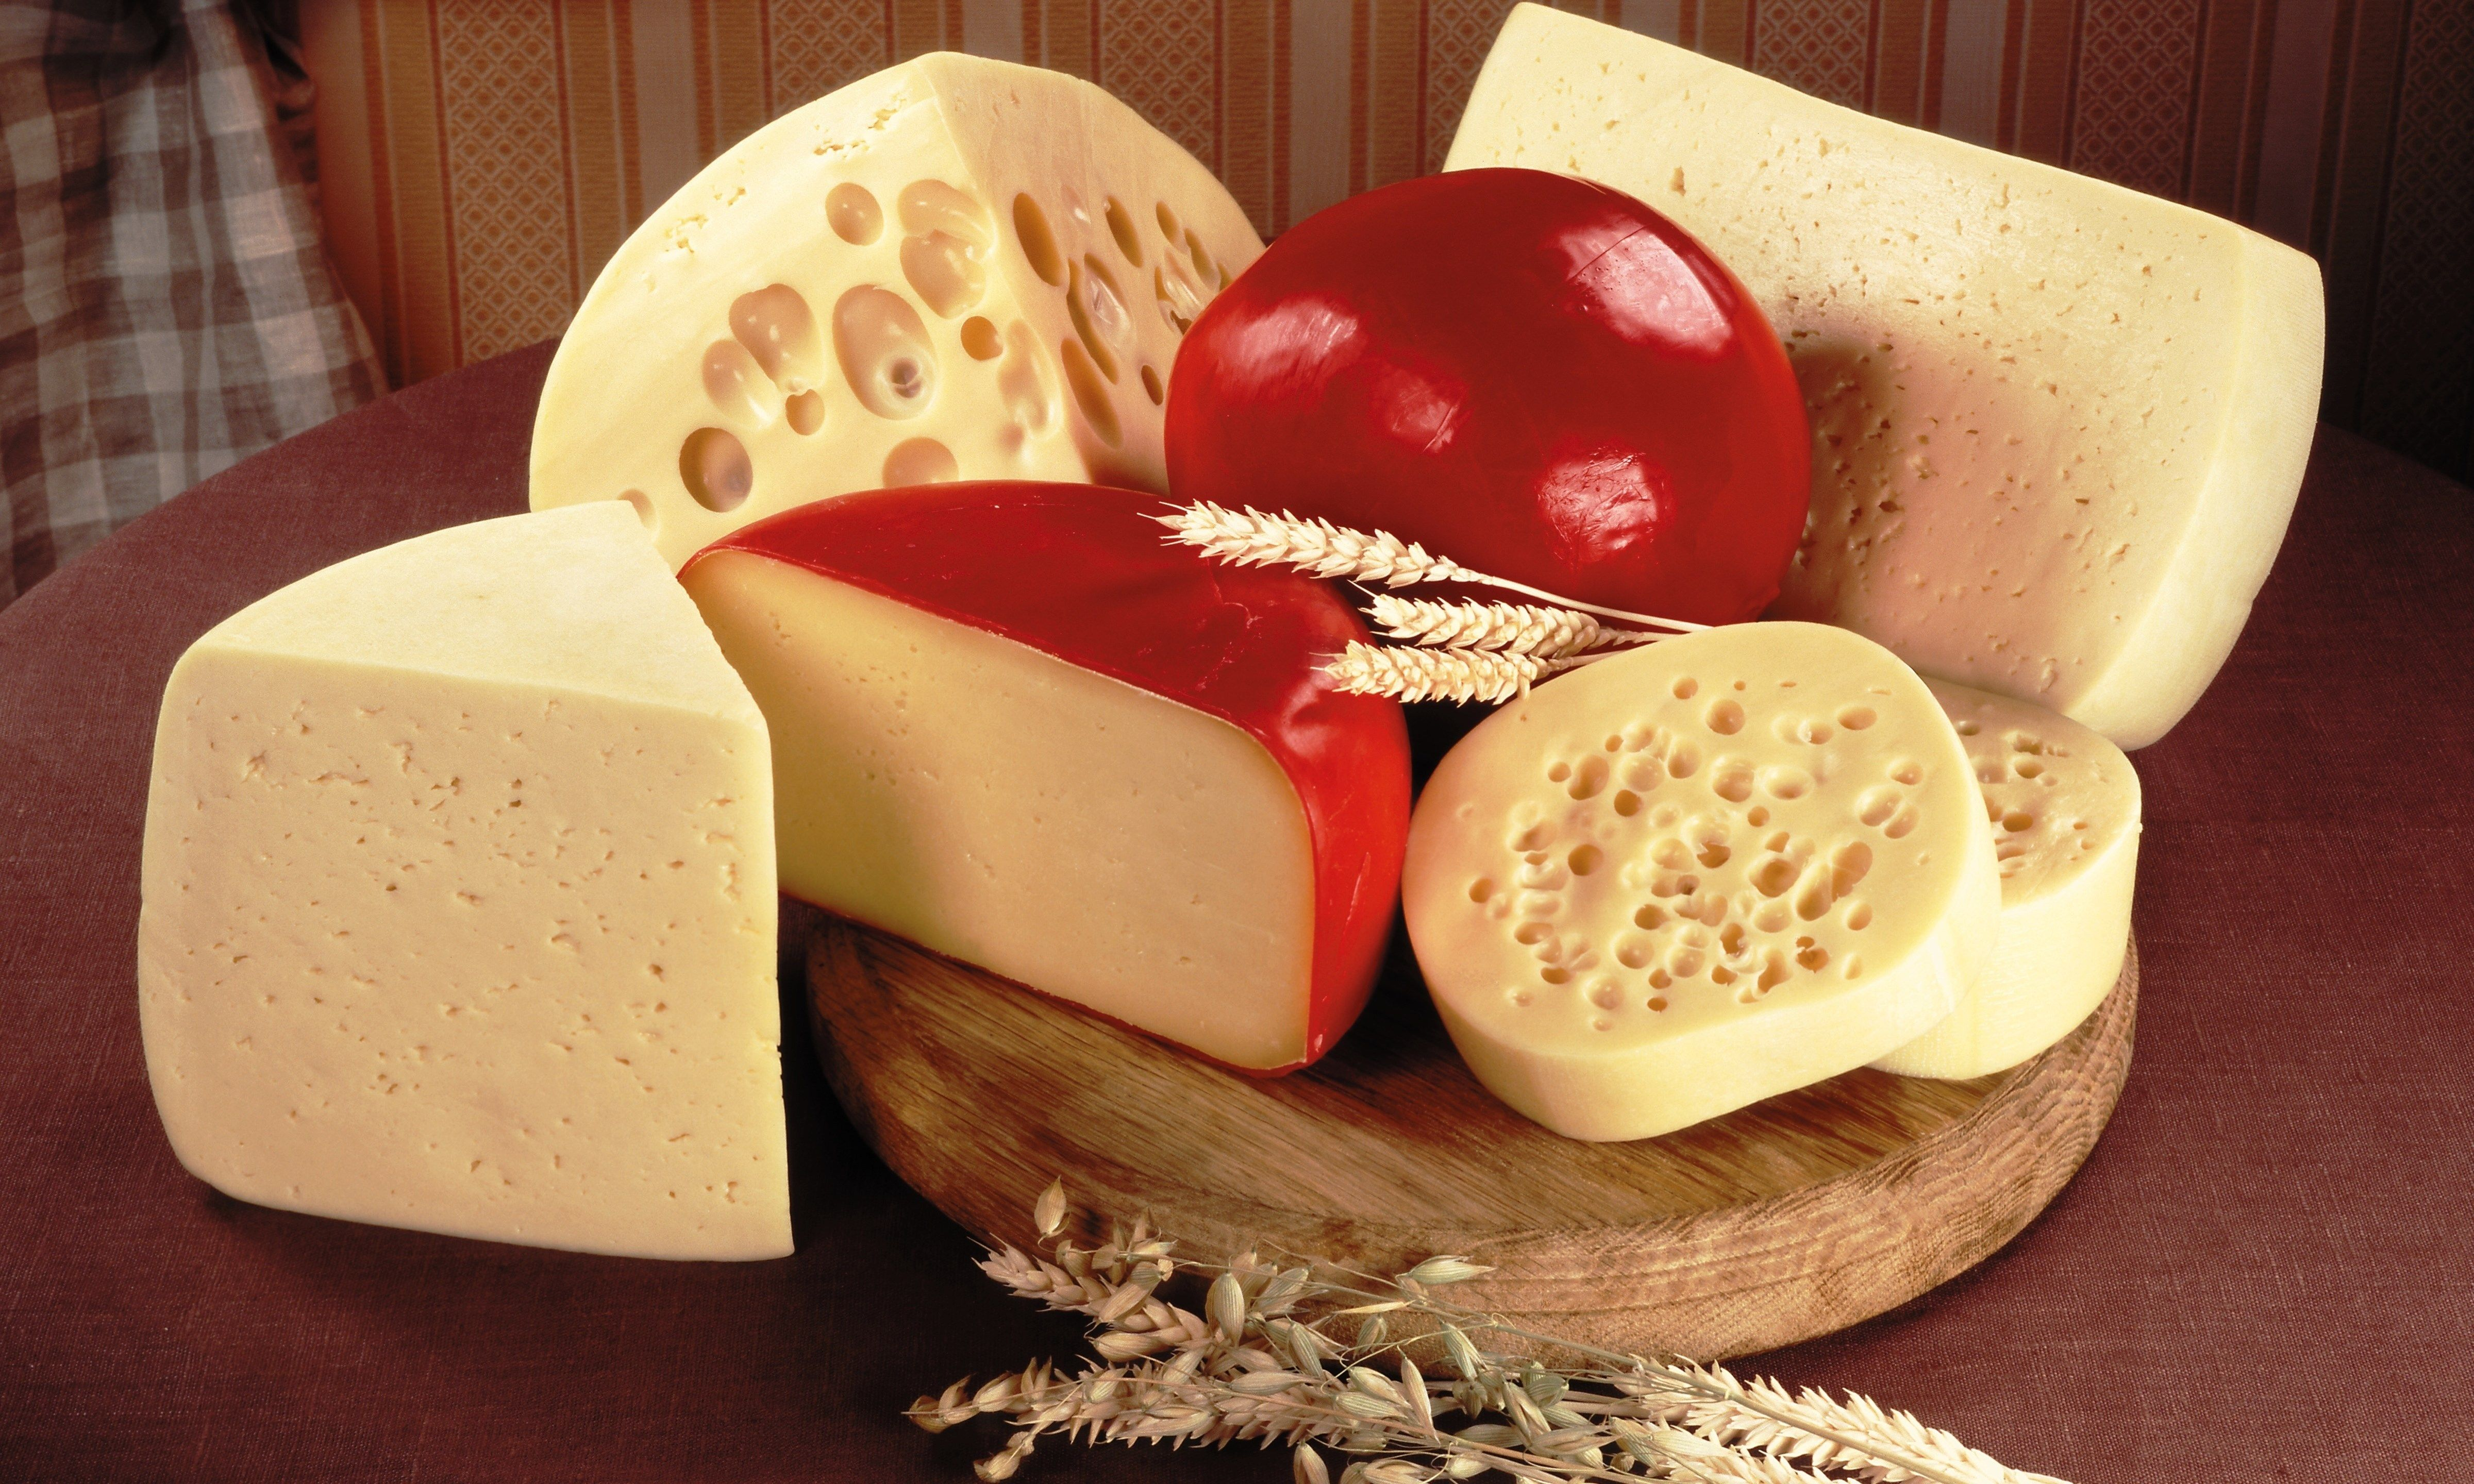 4k cheese hd wallpaper (4800x2880) wallpapers and